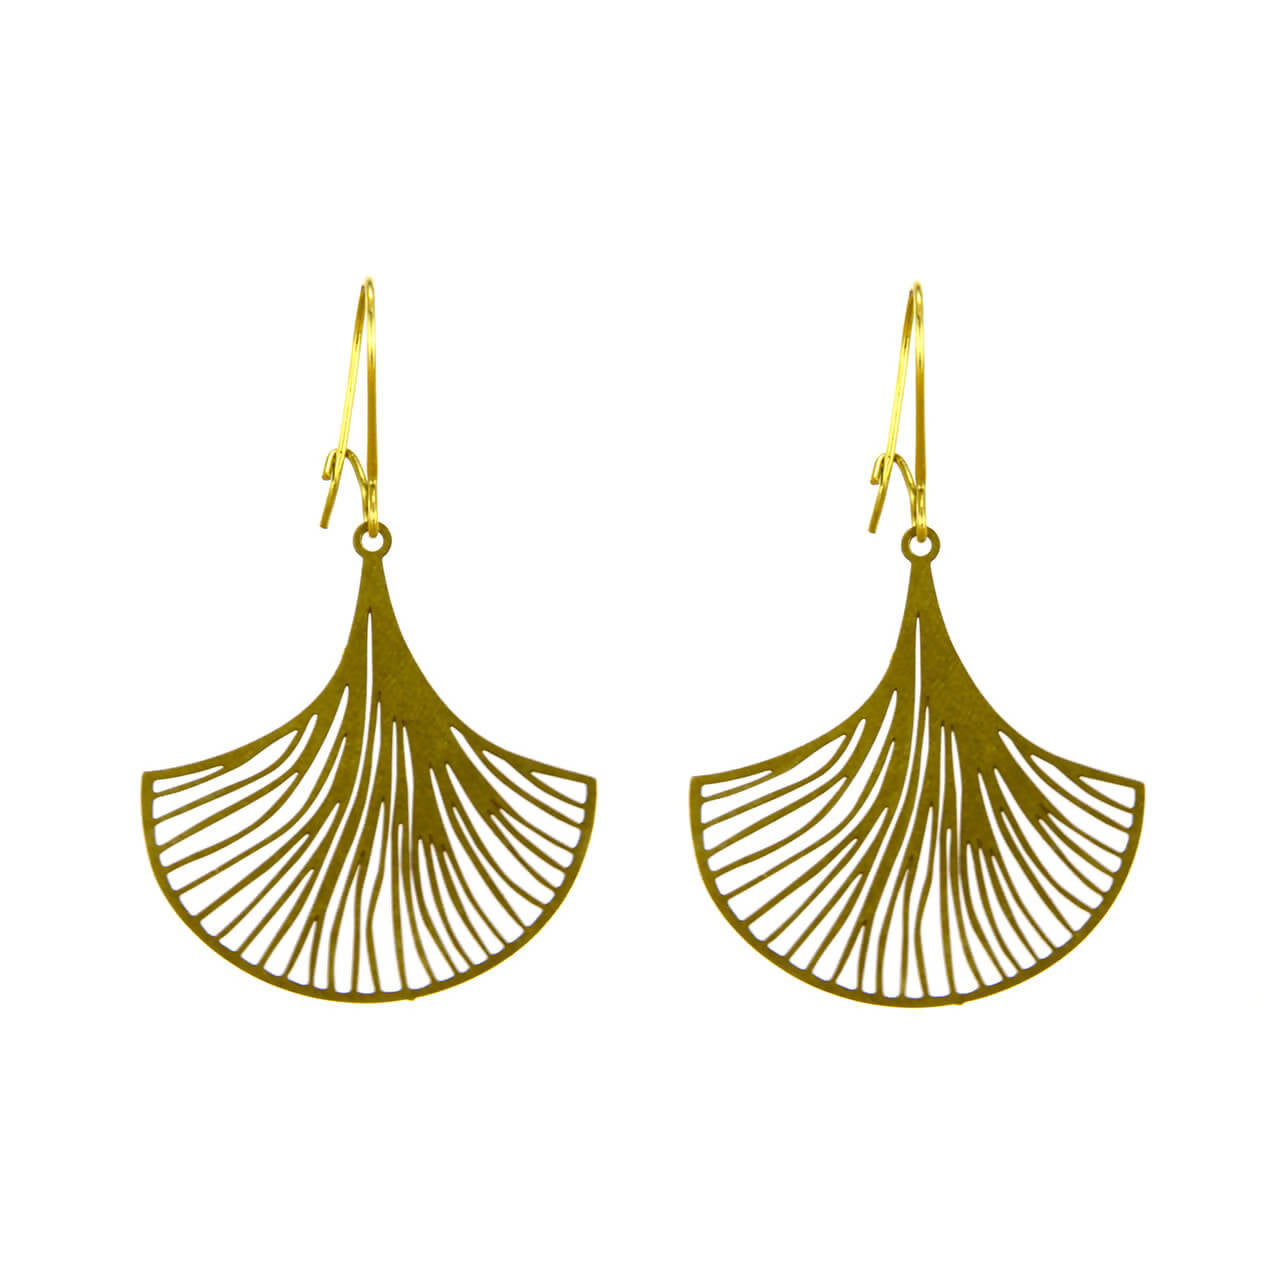 Ginkgo Fan Earrings